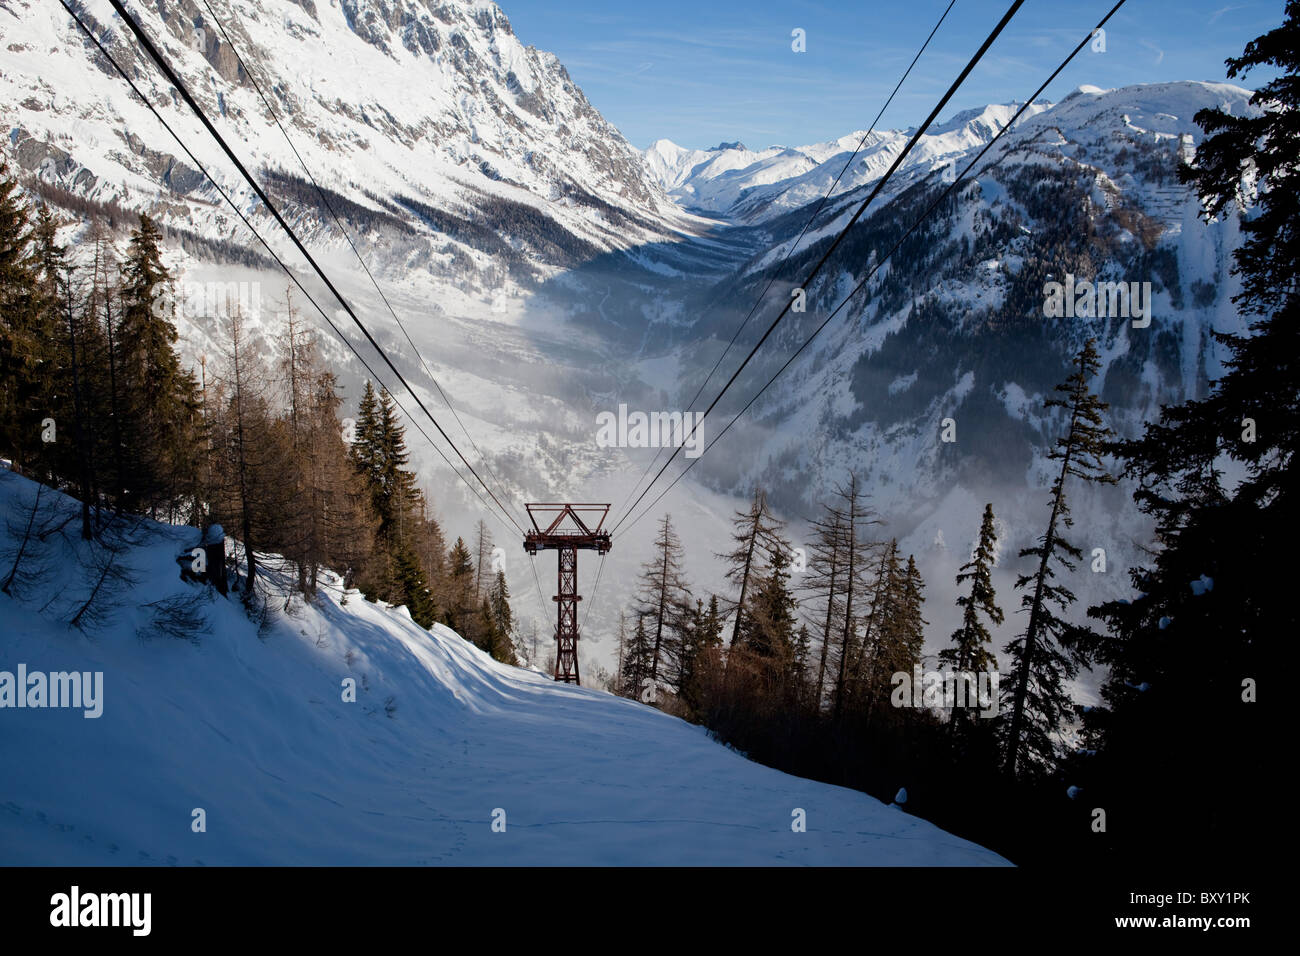 Monte Bianco - Mont Blanc view from the cable car from Entreves towards Val Veny, Courmayeur, Aosta, Italy - Stock Image